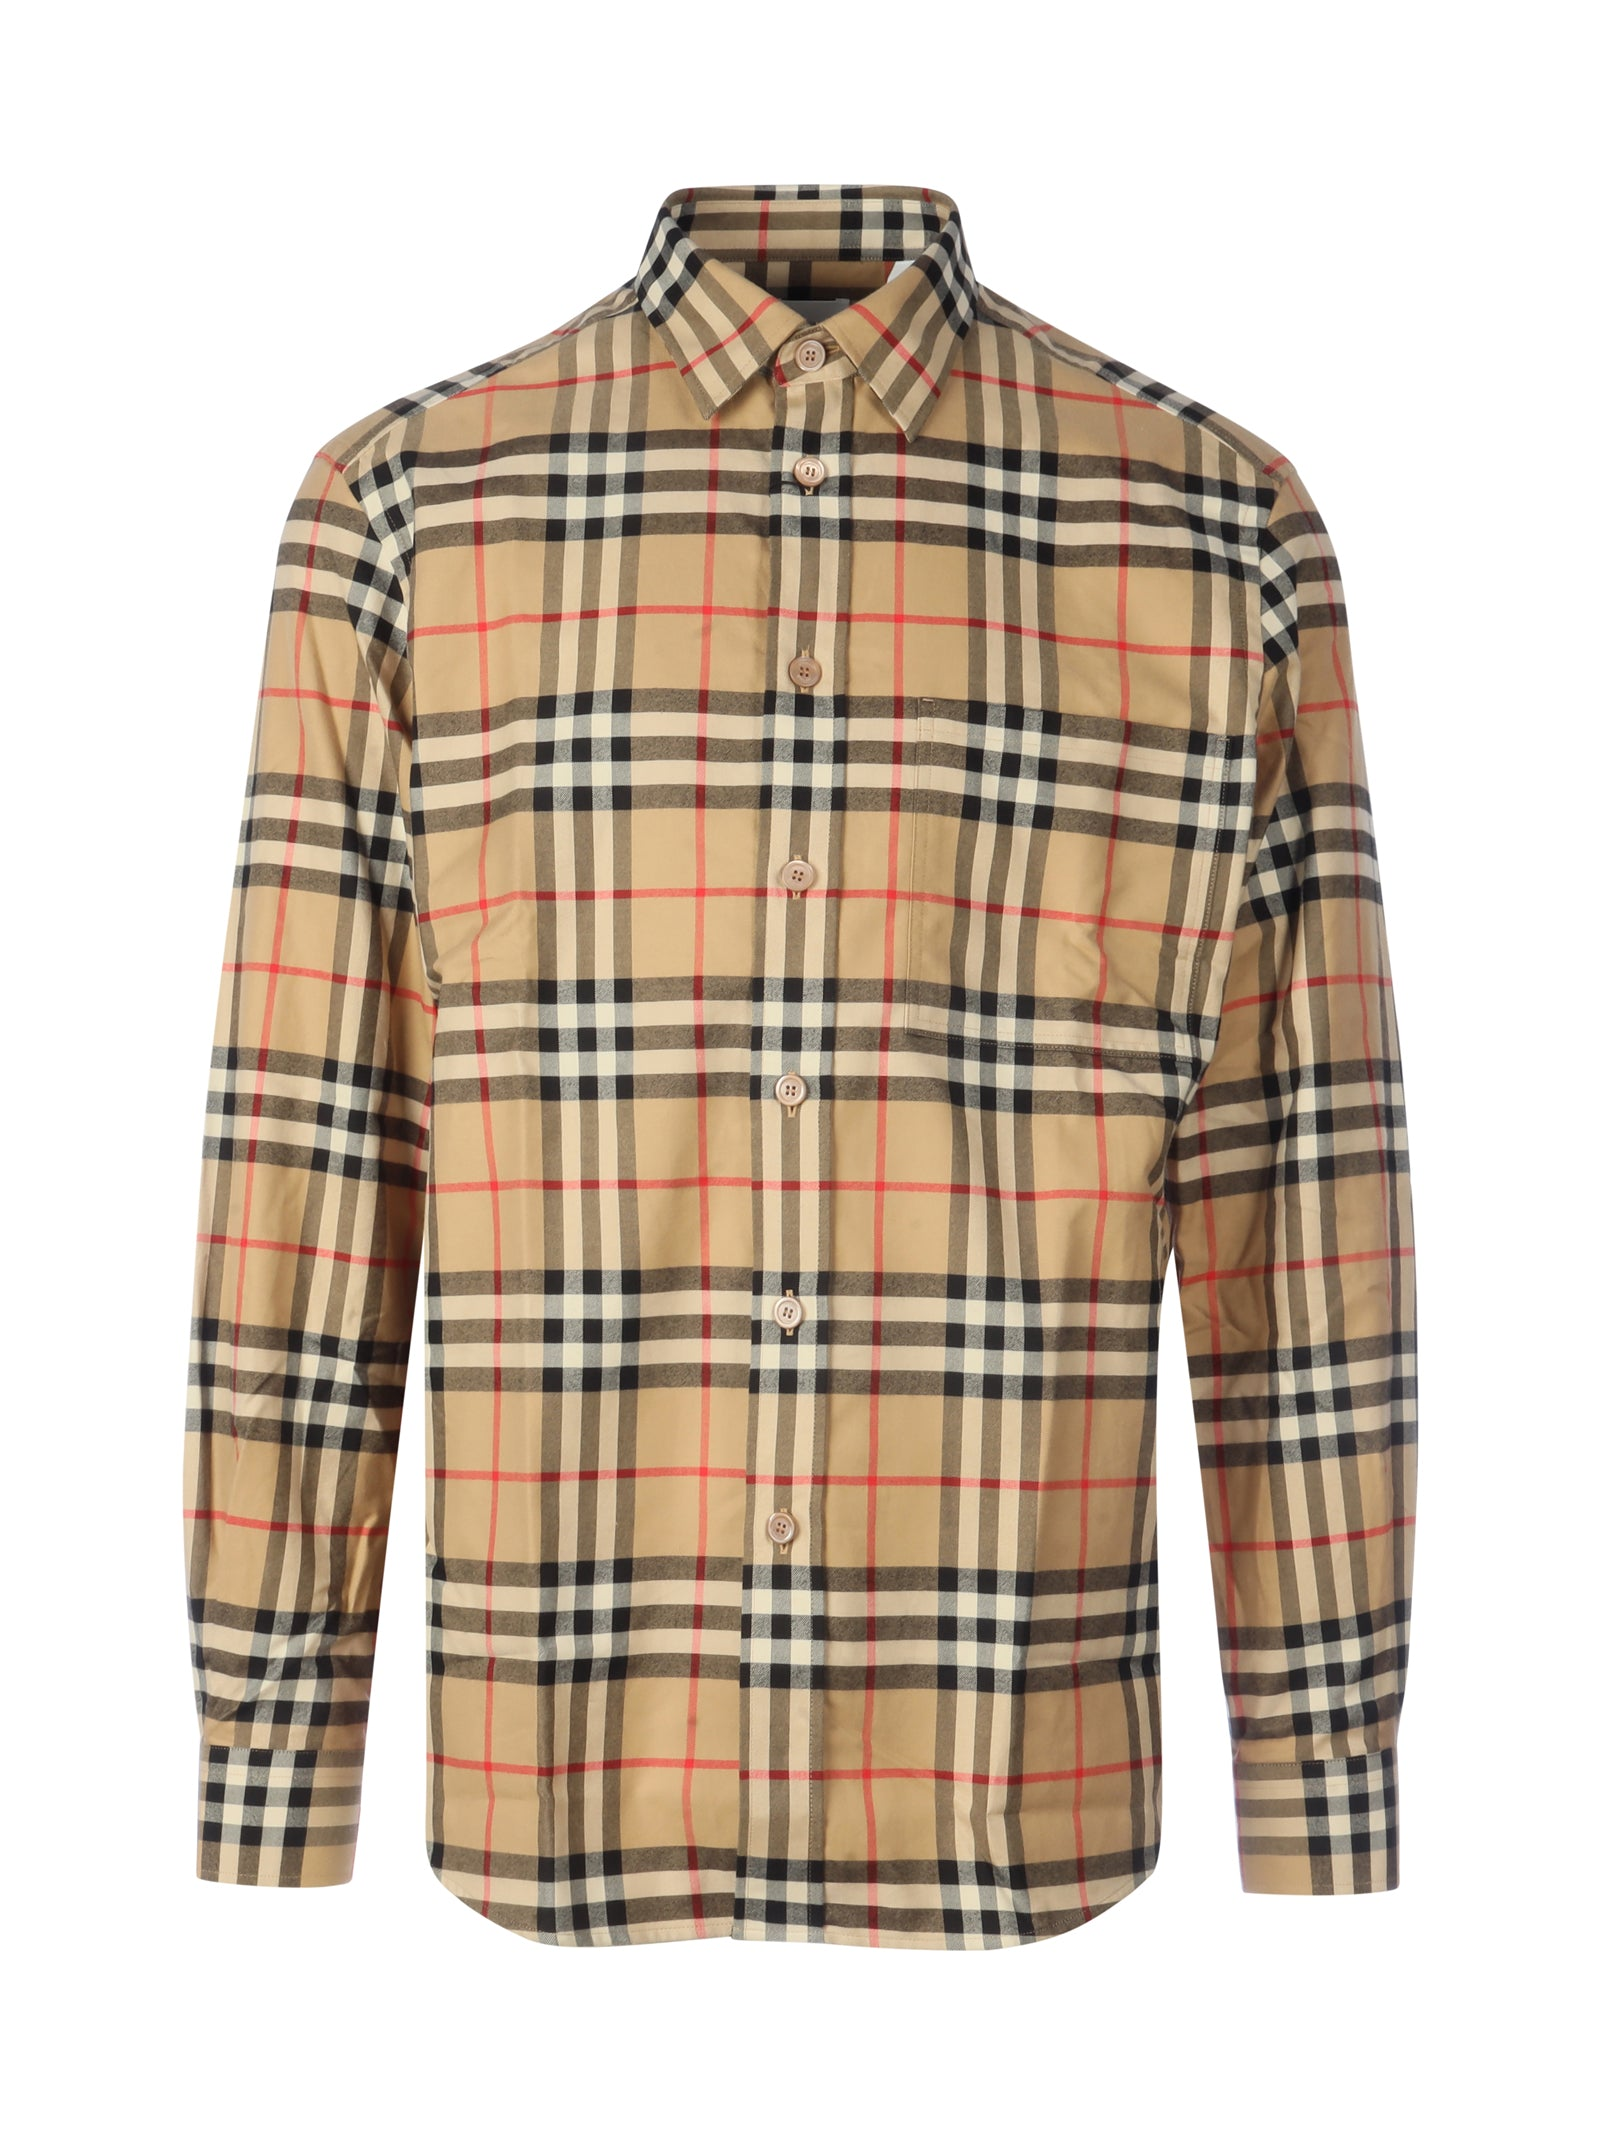 Shirt with vintage check pattern